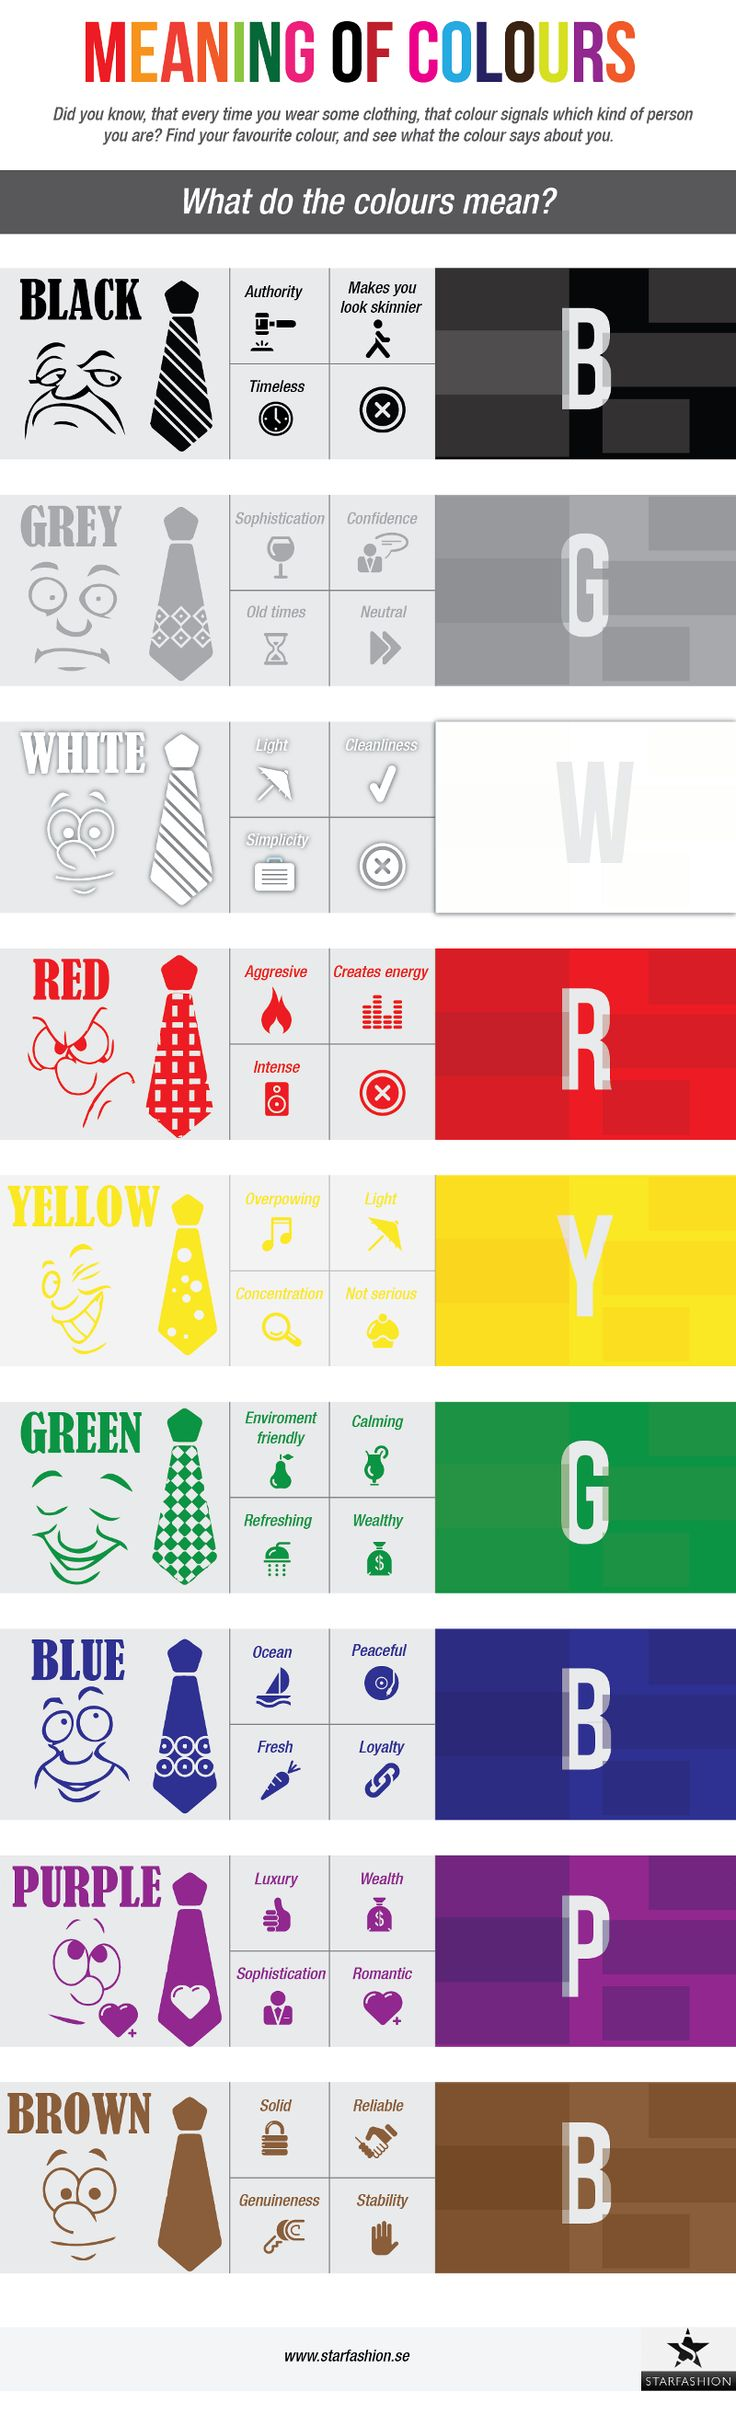 Color Meanings 41 Best Meaning Of Colors Images On Pinterest  Color Theory